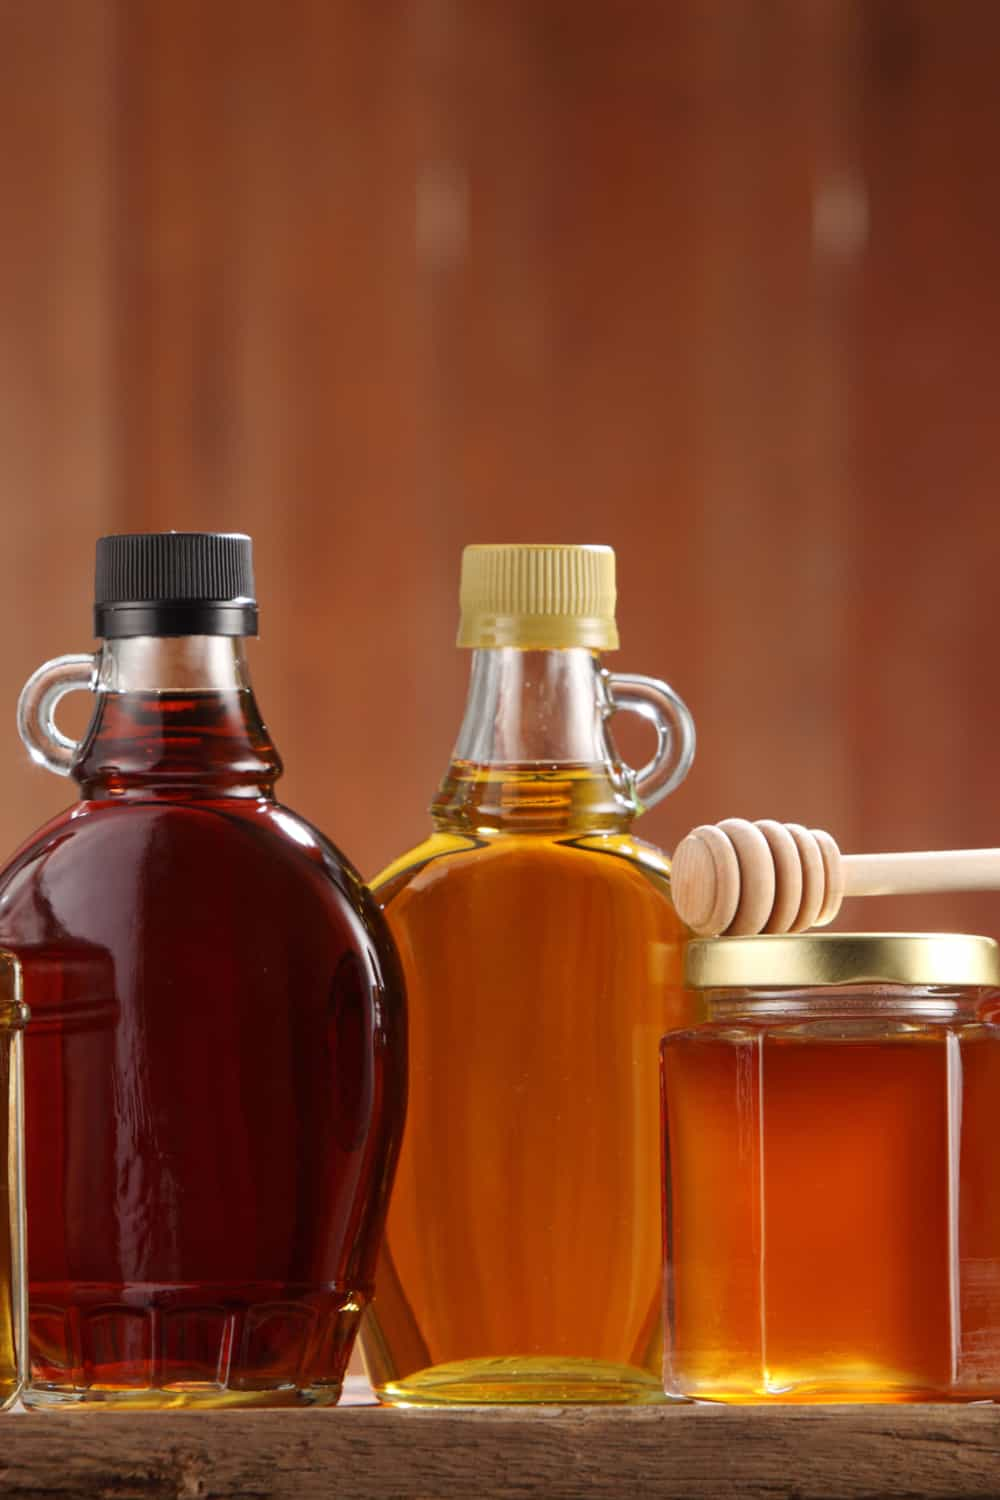 5 Tips To Store Maple Syrup